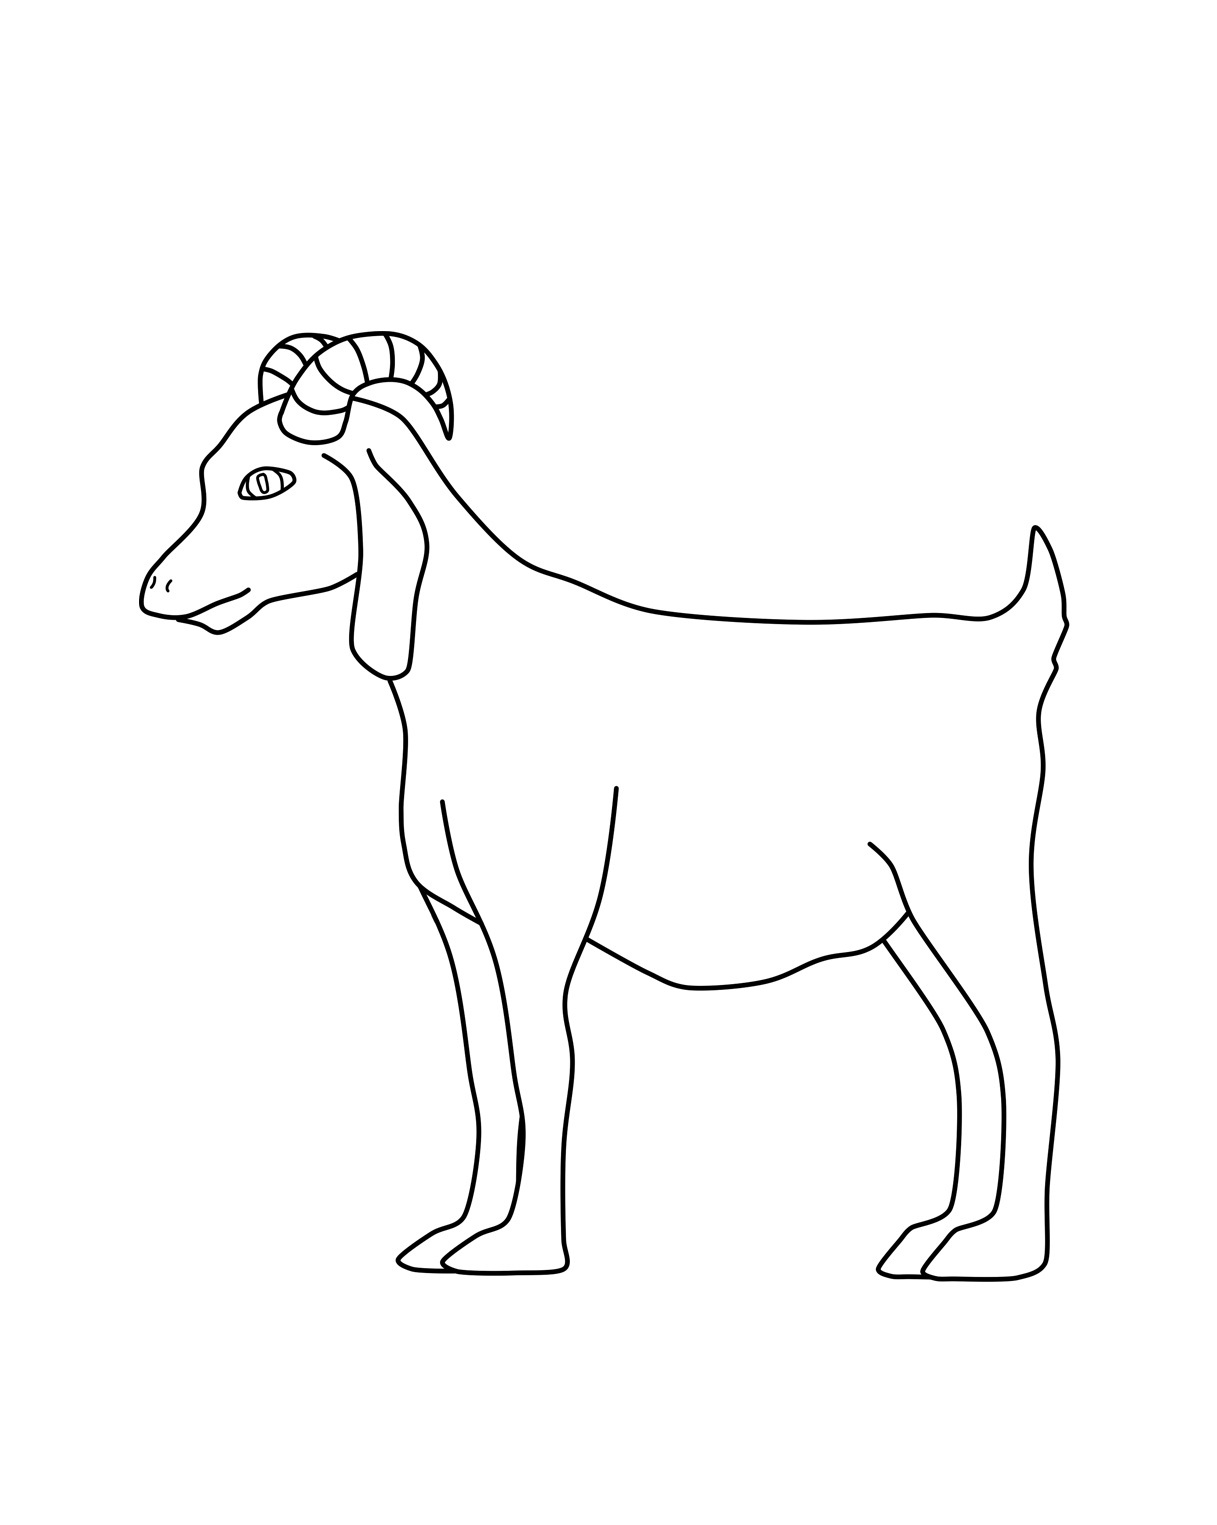 goat to color goat coloring pages goat to color